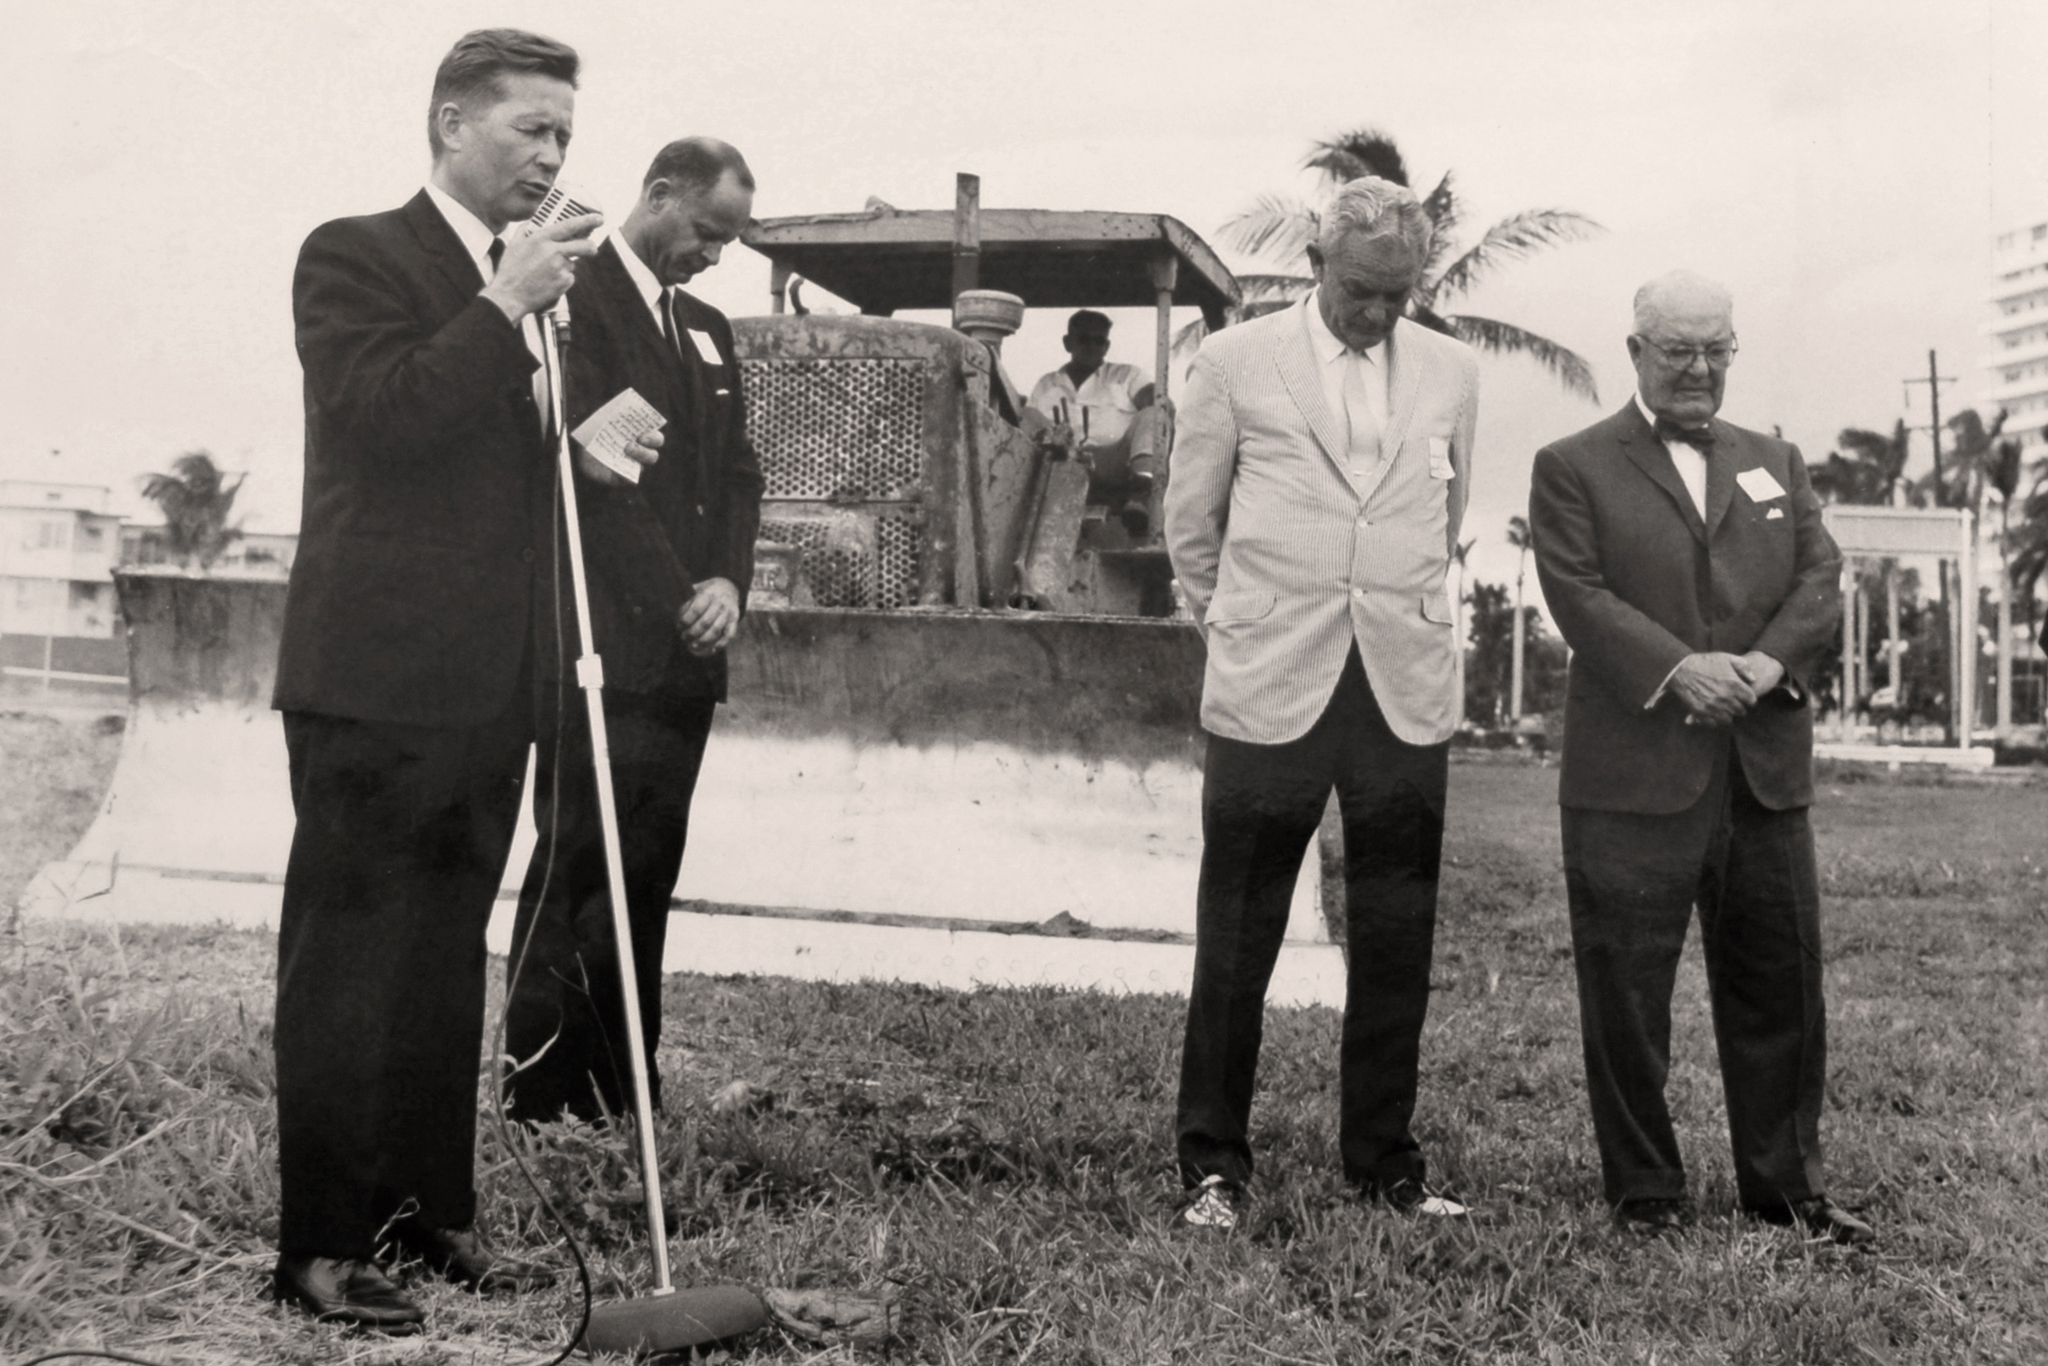 Breaking ground five decades ago.